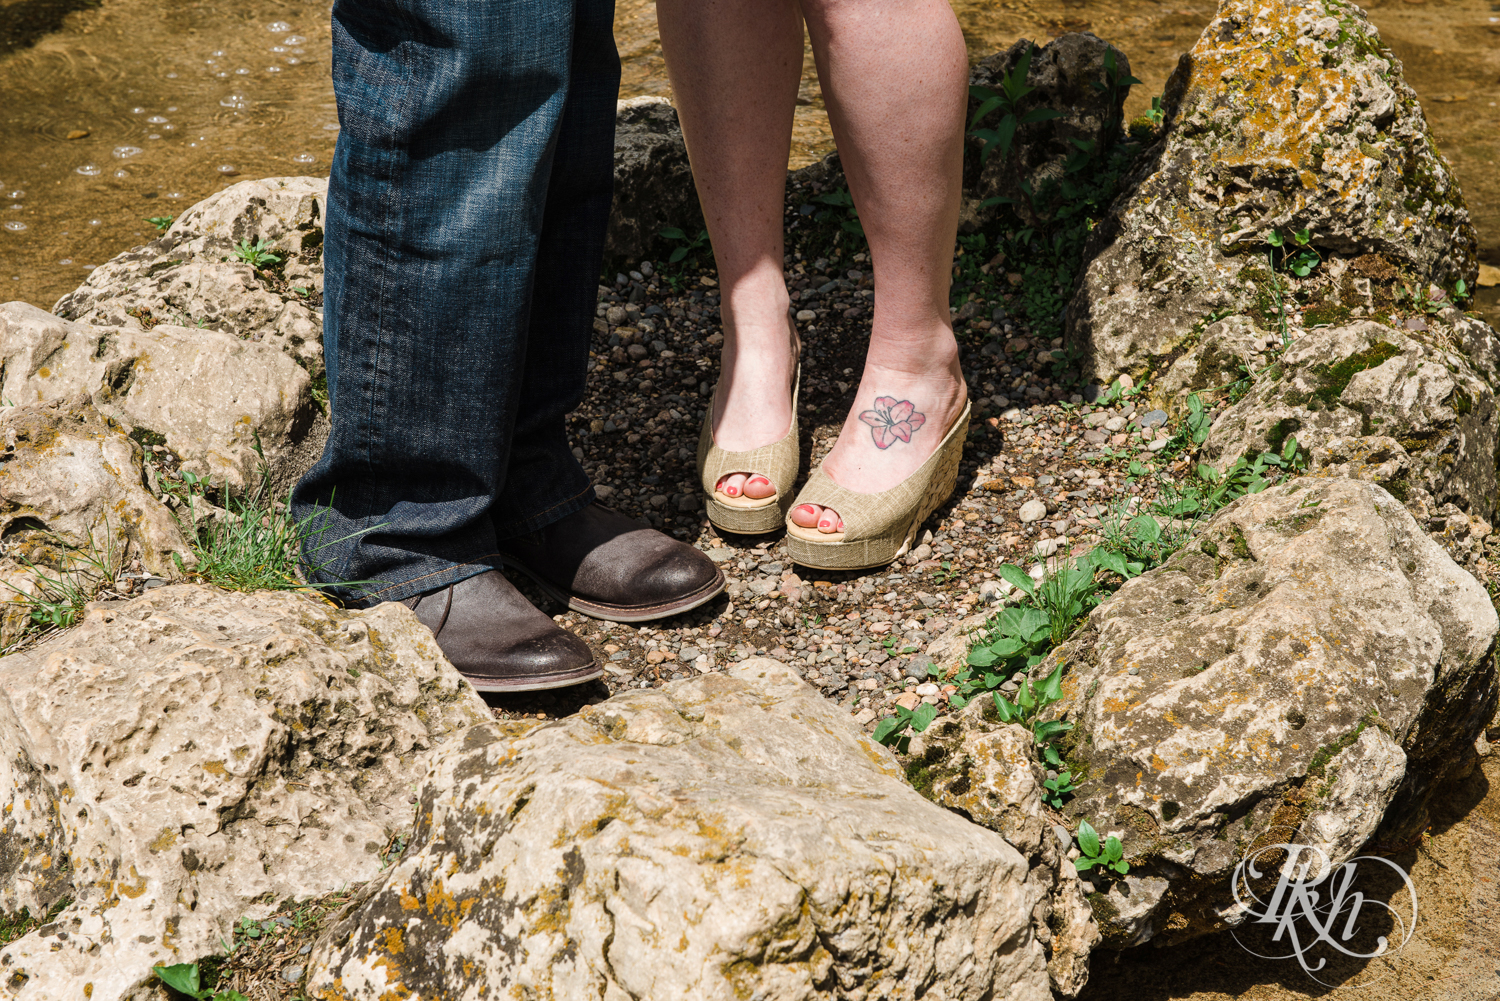 Tess and Eric - Lyndale Rose Garden - Minnesota Engagement Photography - RKH Images  (4 of 12).jpg